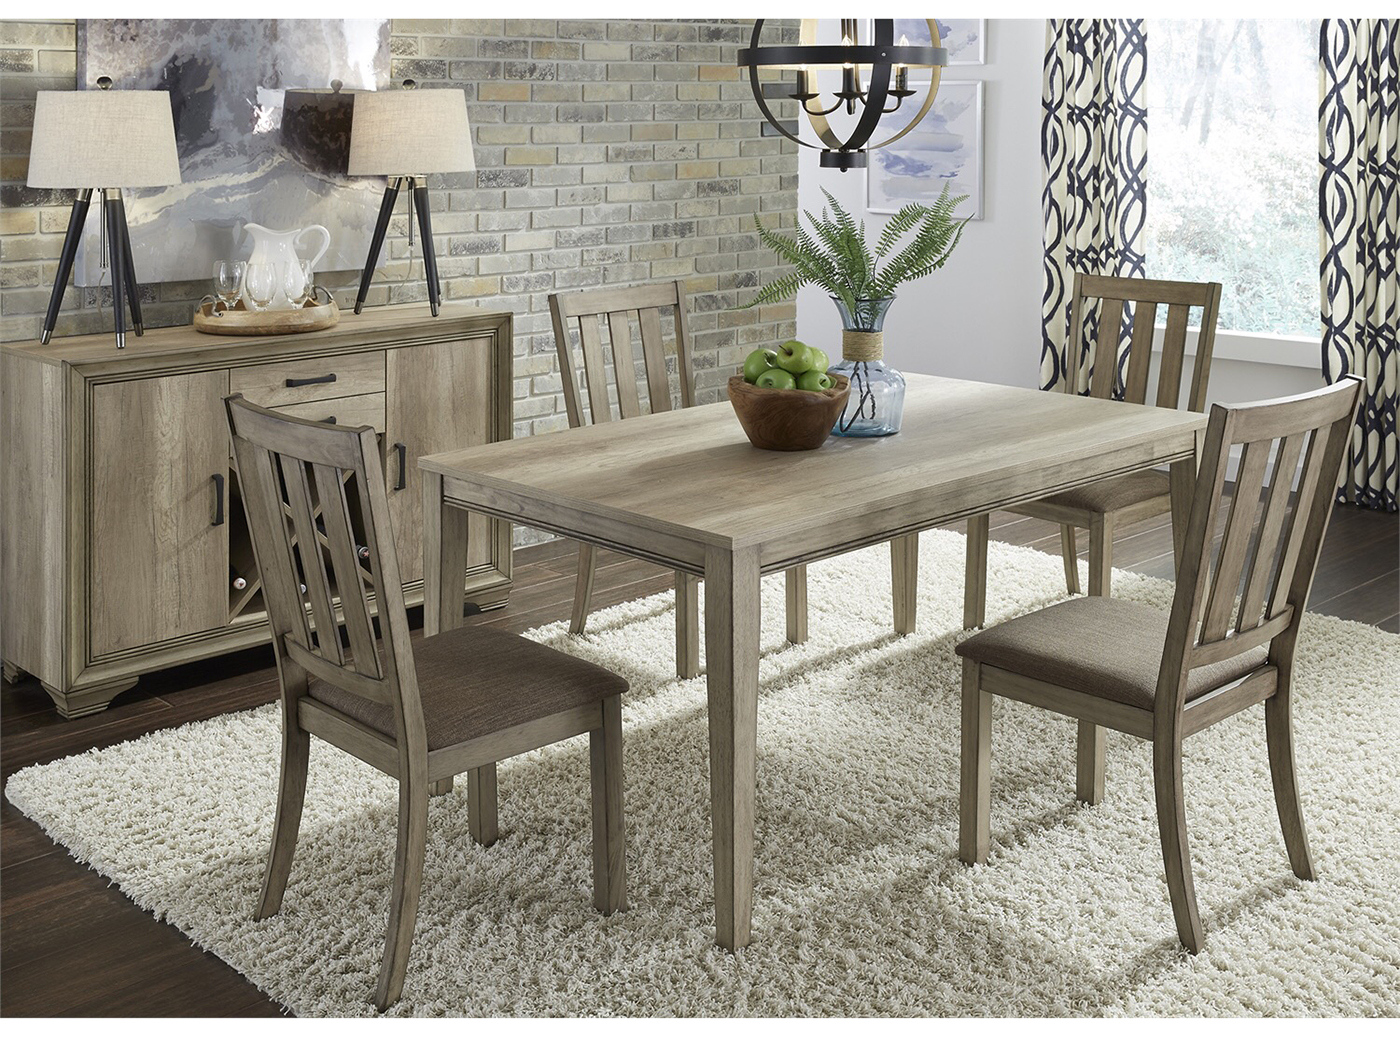 Dining – Dining Sets | Steinhafels With Regard To 2018 Aria 5 Piece Dining Sets (View 7 of 20)